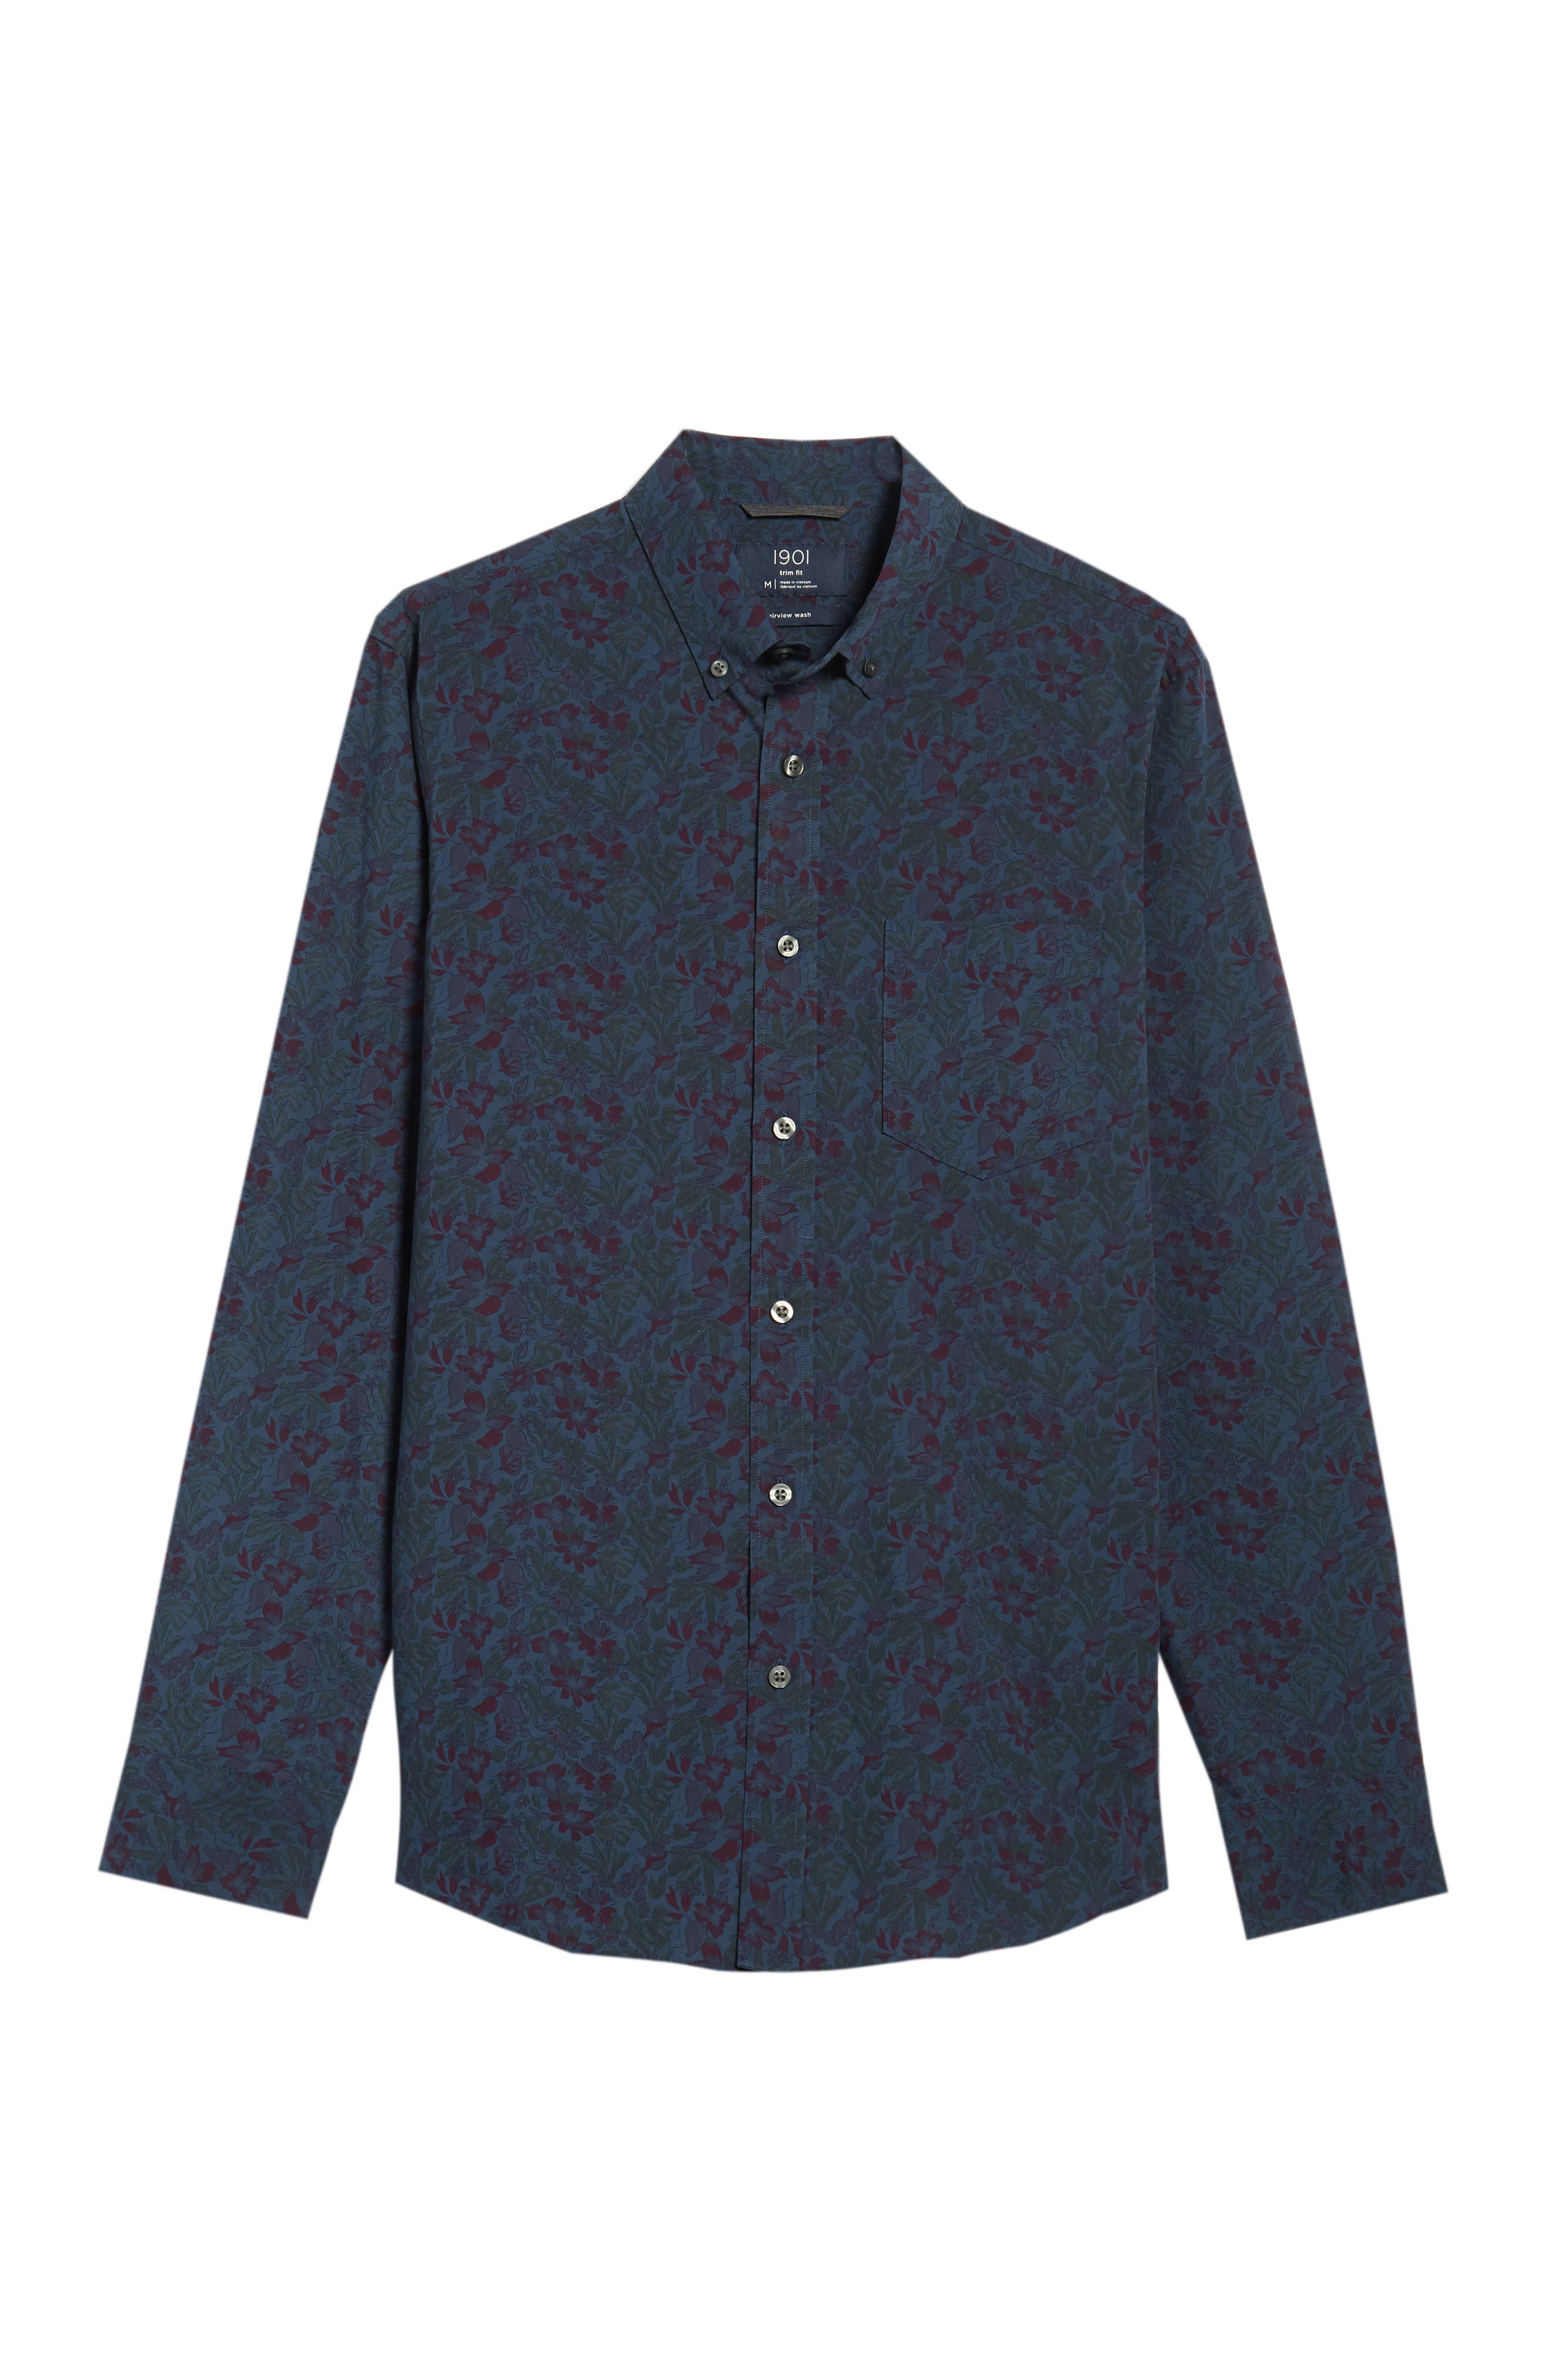 Trim Fit Floral Print Sport Shirt,                             Alternate thumbnail 6, color,                             NAVY TROPICAL CHAMBRAY PRINT